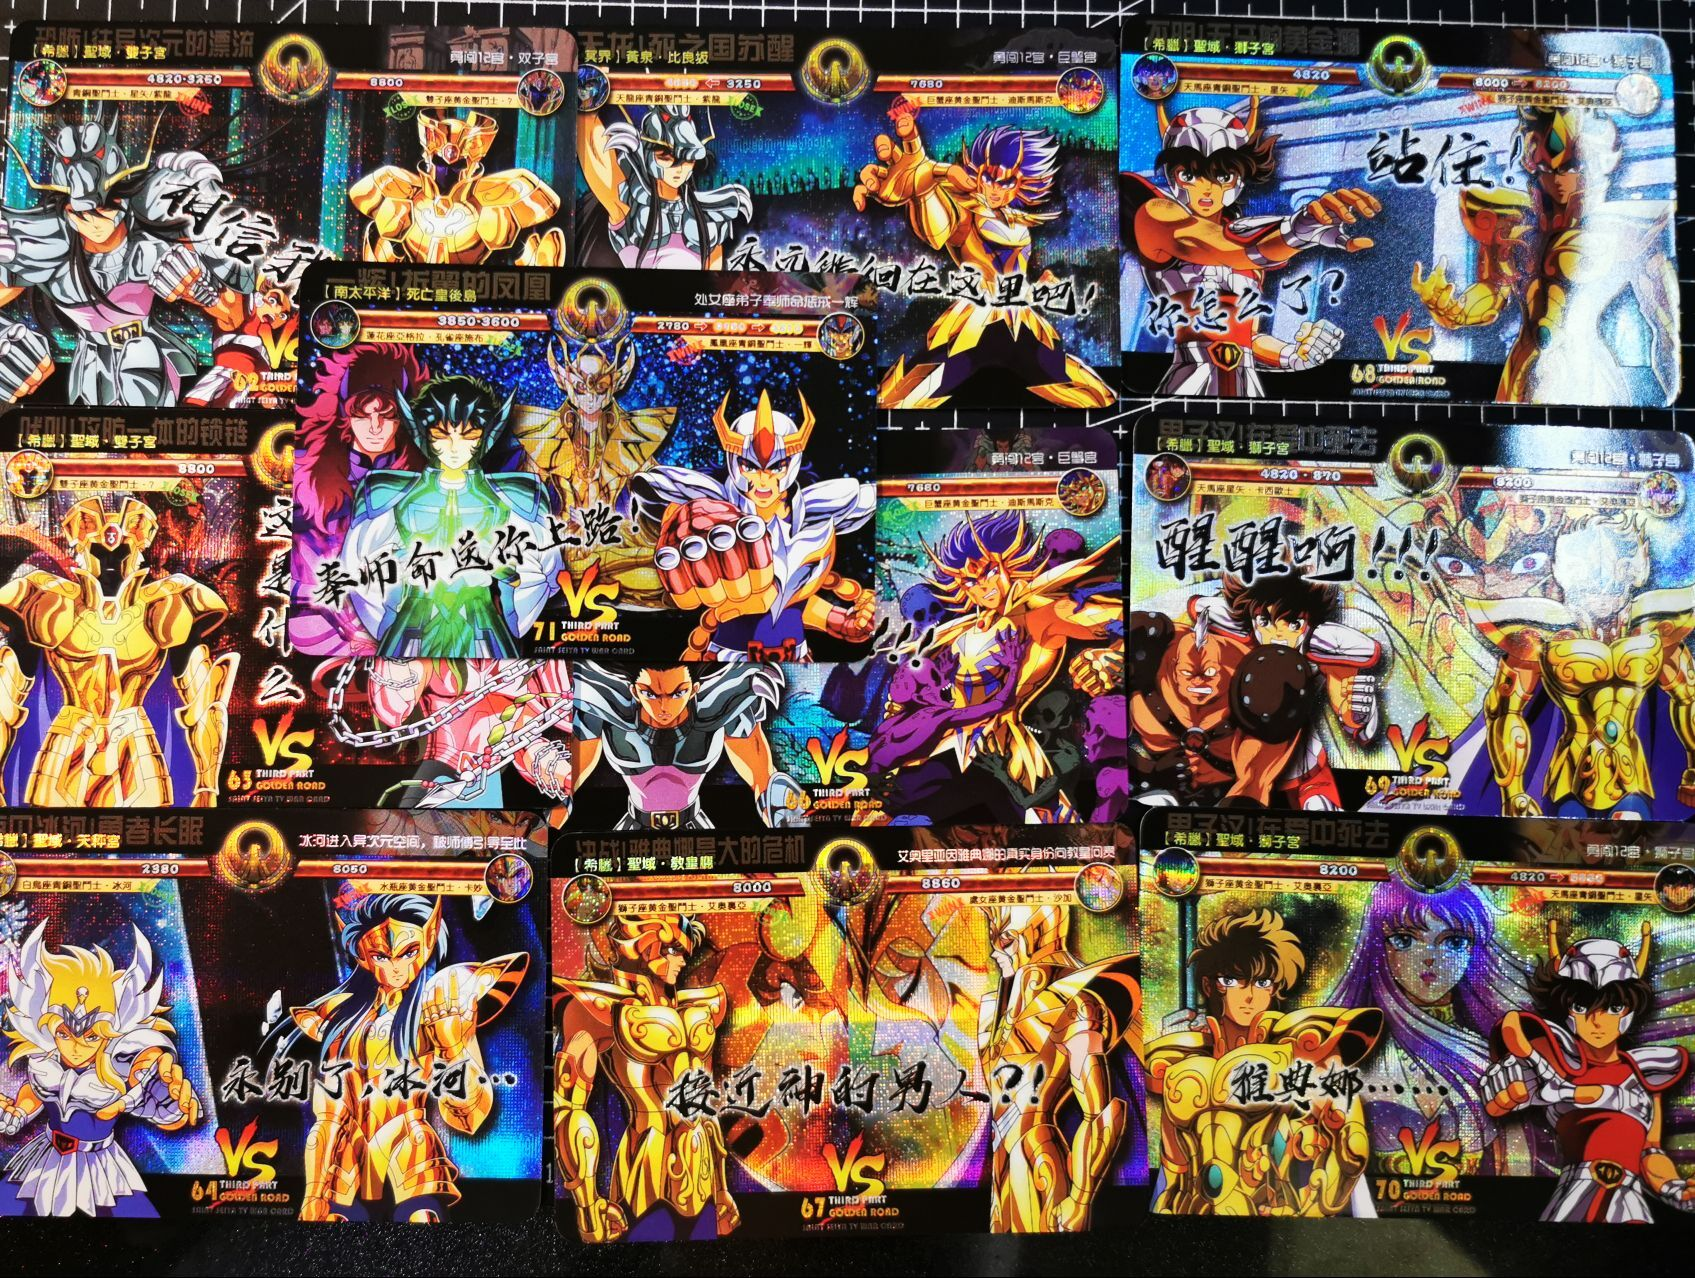 16pcs/set Saint Seiya Golden Road No.3 Upper Half Toys Hobbies Hobby Collectibles Game Collection Anime Cards